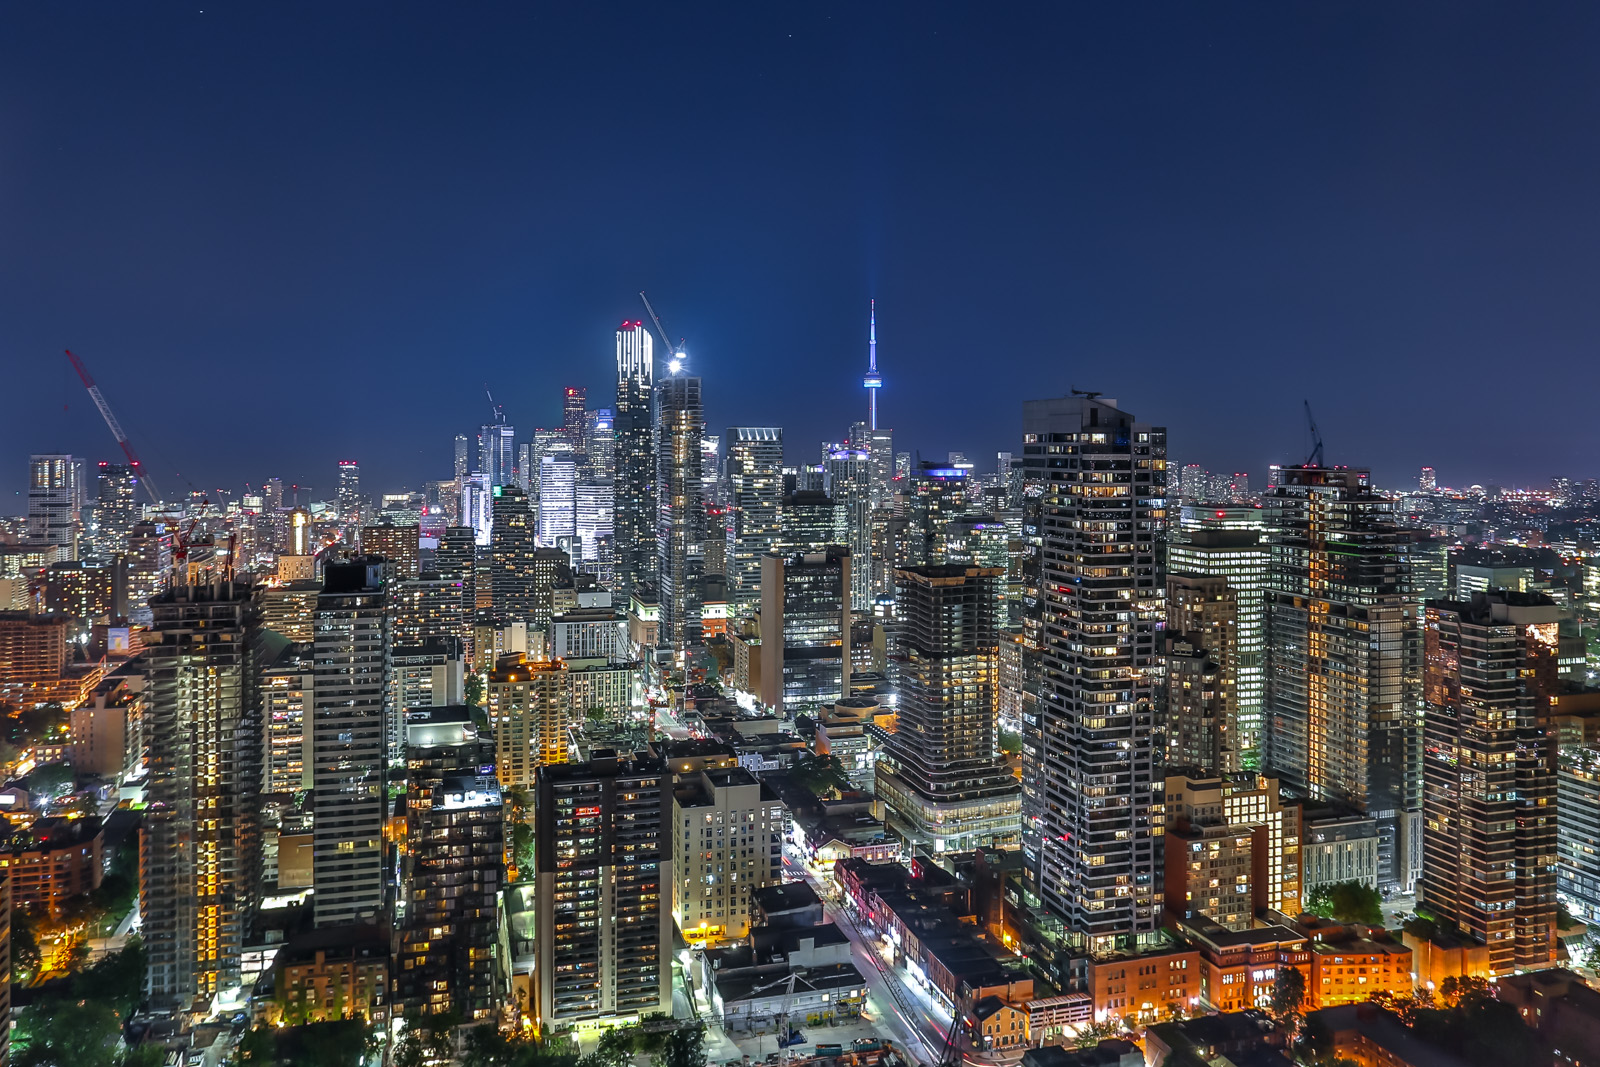 Toronto skyline at night shows its transformation into a buyers market.